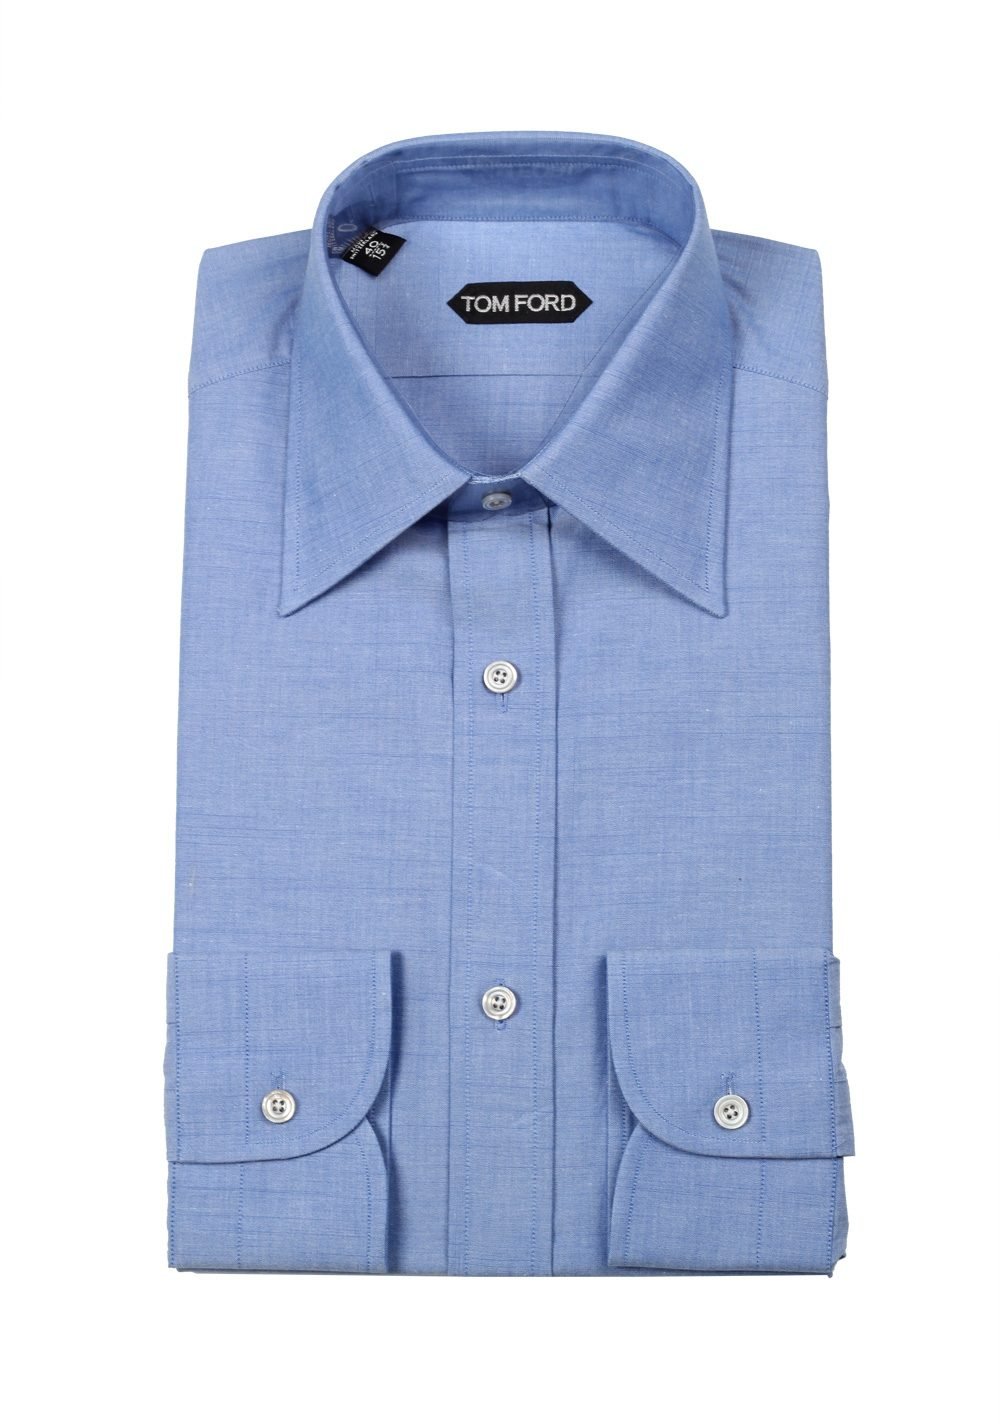 Tom ford solid blue dress shirt size 40 15 75 u s for Size 15 dress shirt